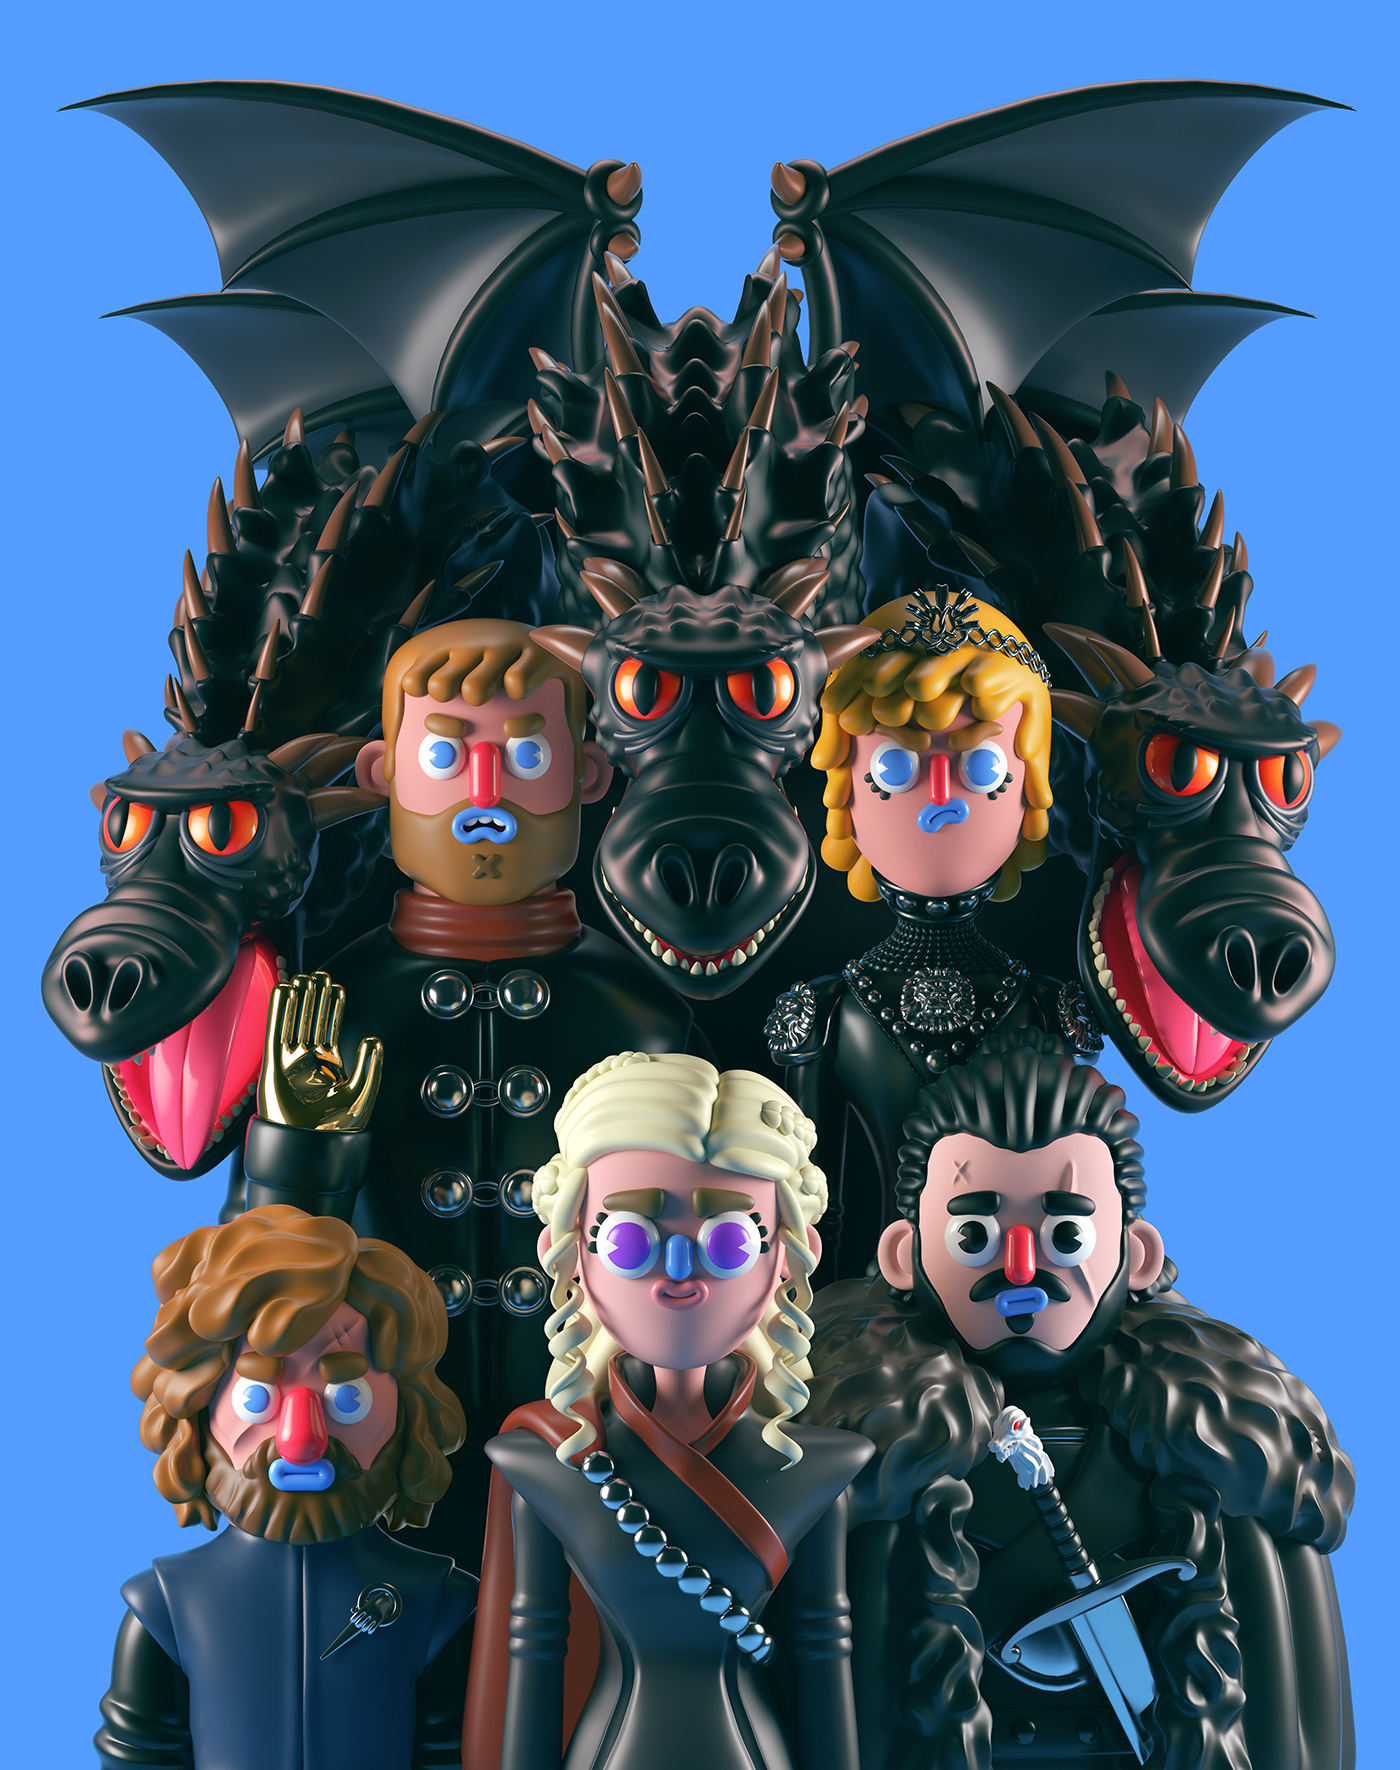 Funny 3D Game Of Thrones Characters (18 pics)